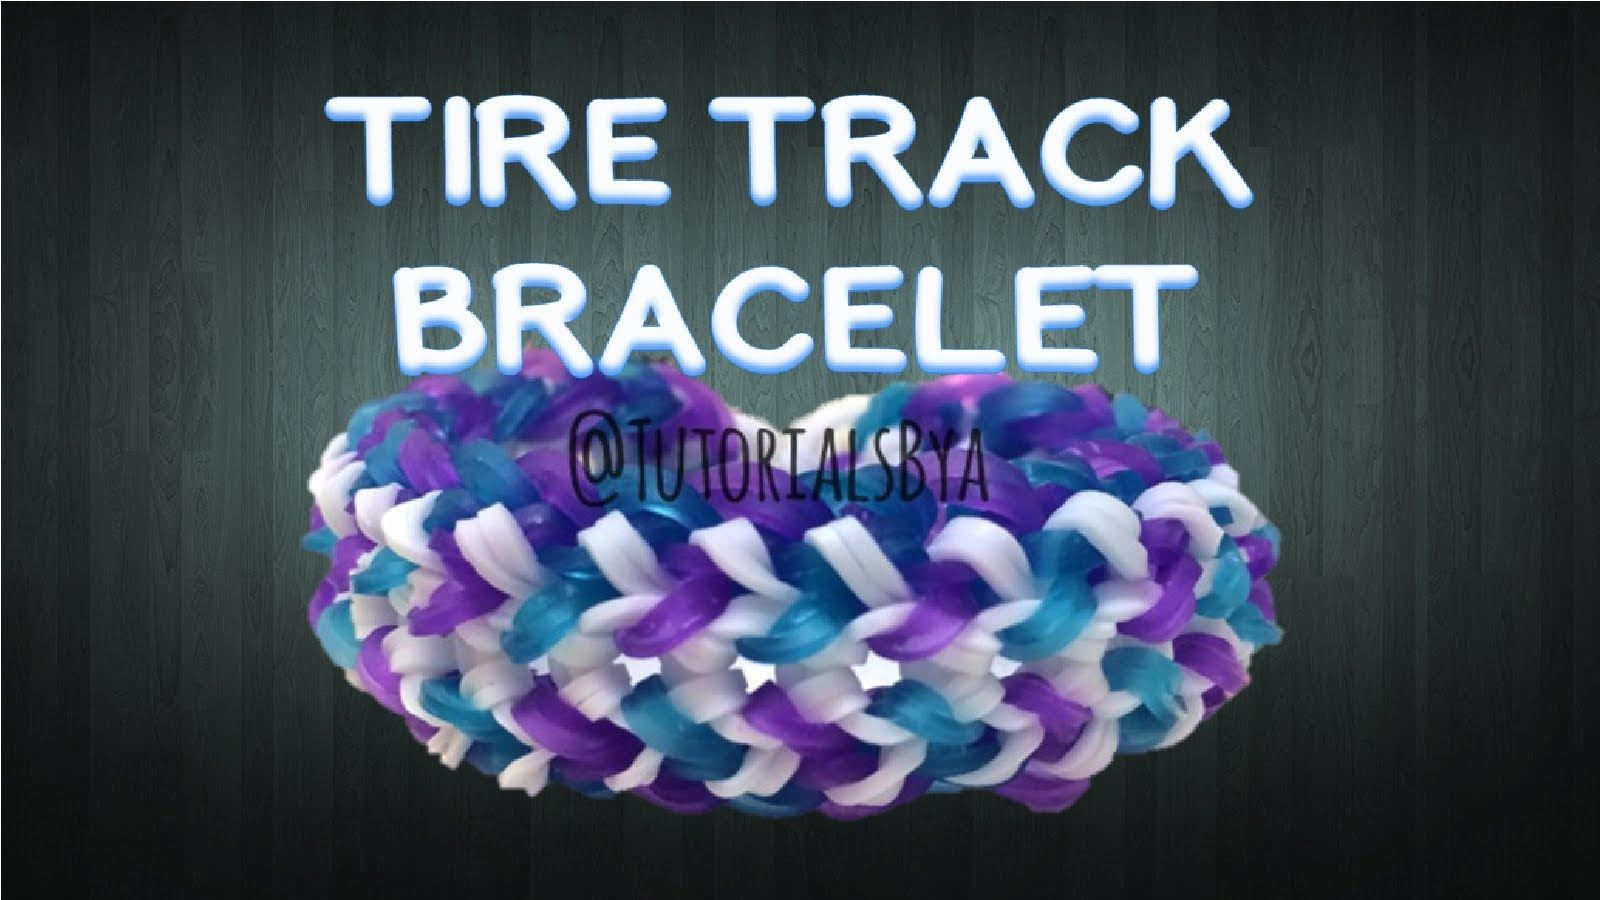 New tire track rainbow loom bracelet tutorialoriginal design